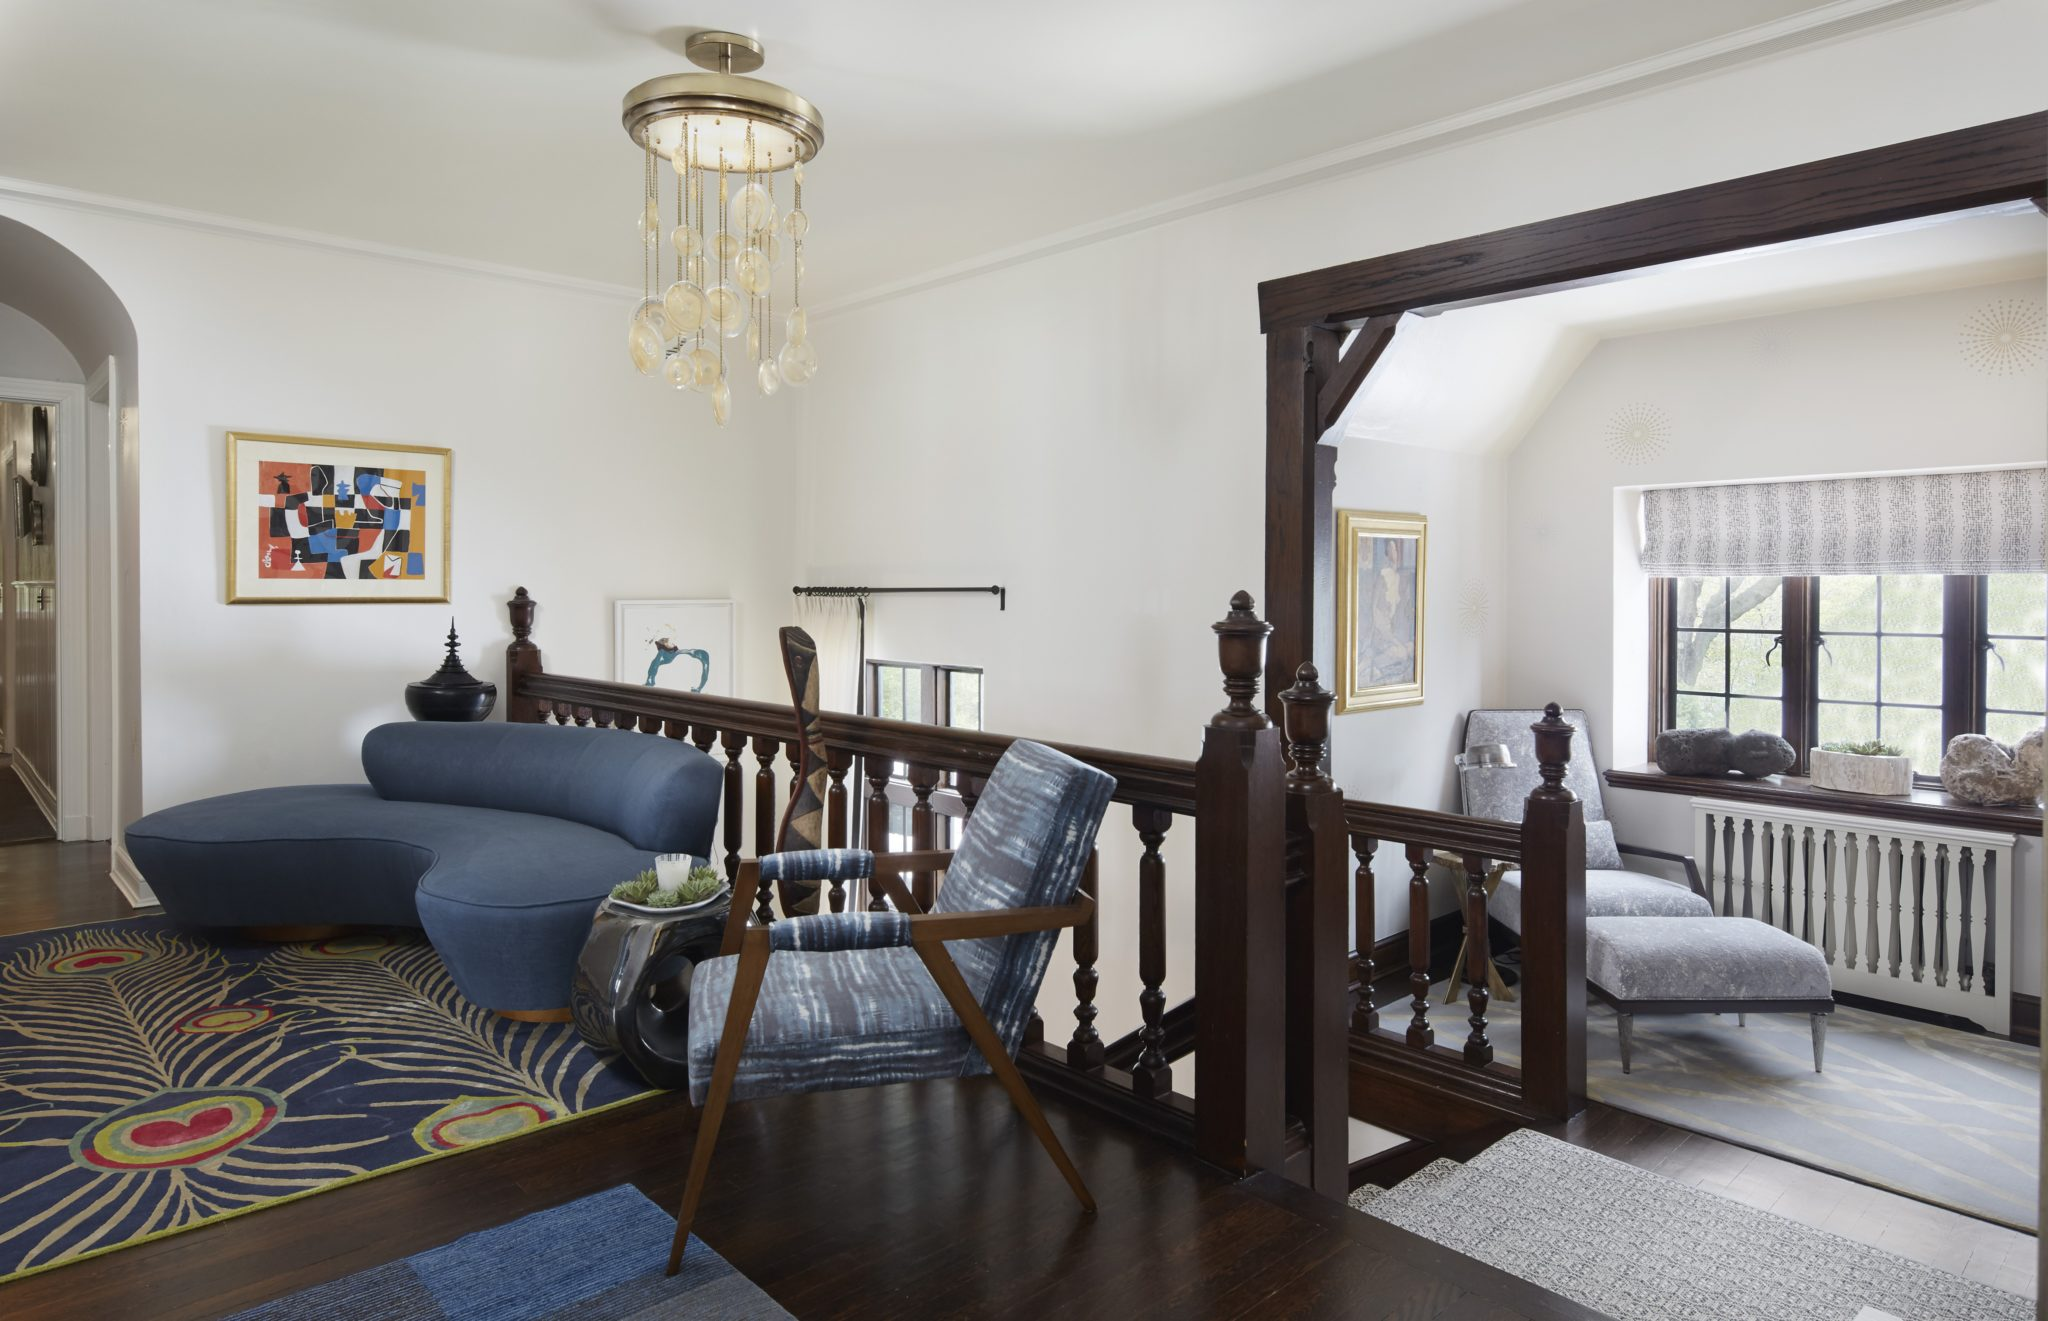 Second floor nook and landing by Gray lWalter